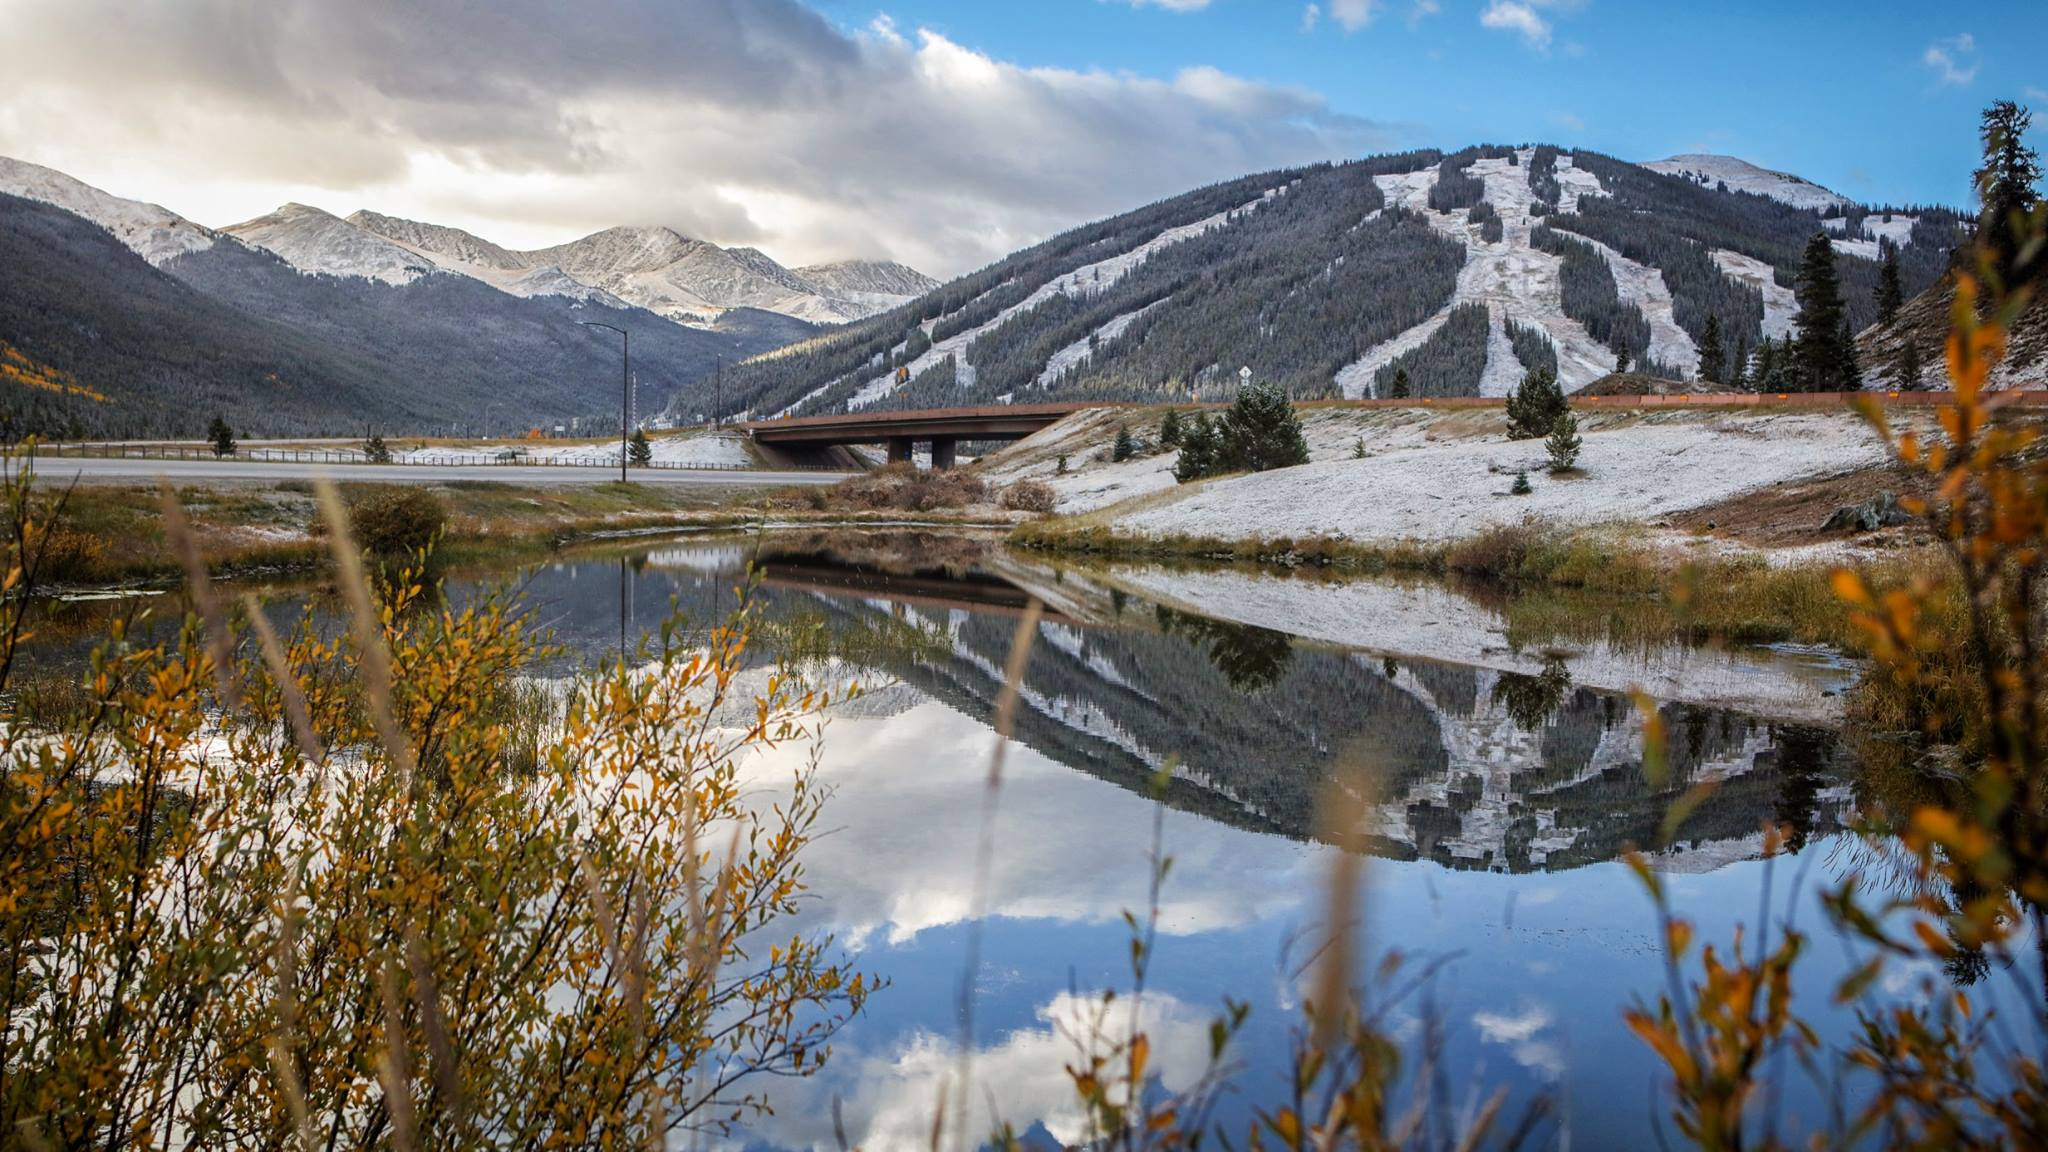 September snow at Copper Mountain